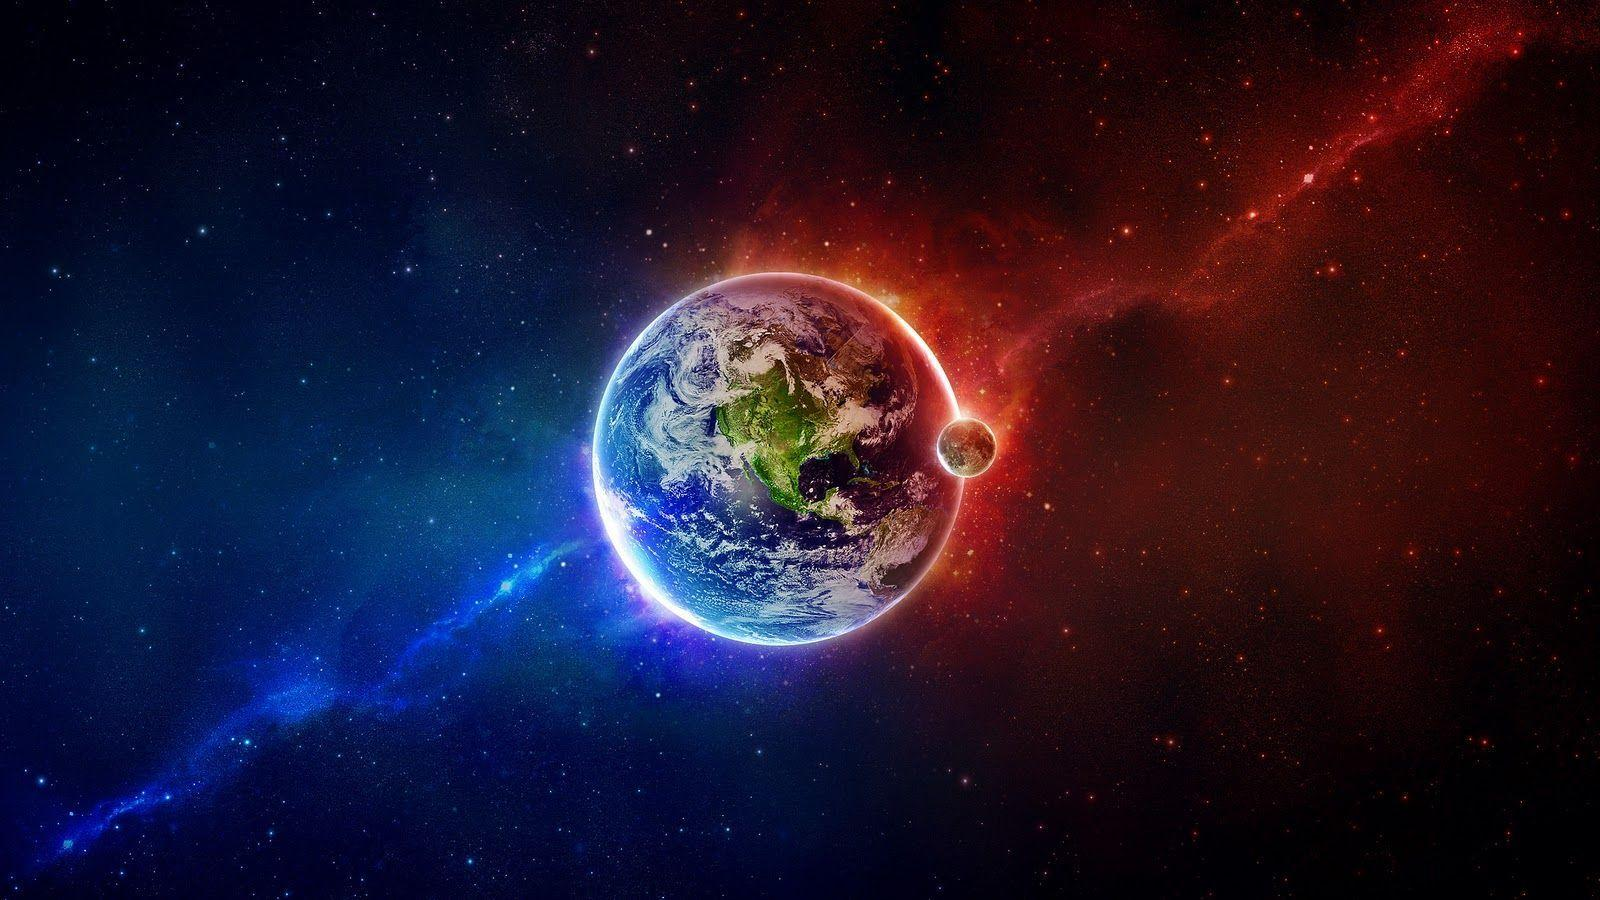 Epic Space Wallpaper: Epic HD Wallpapers